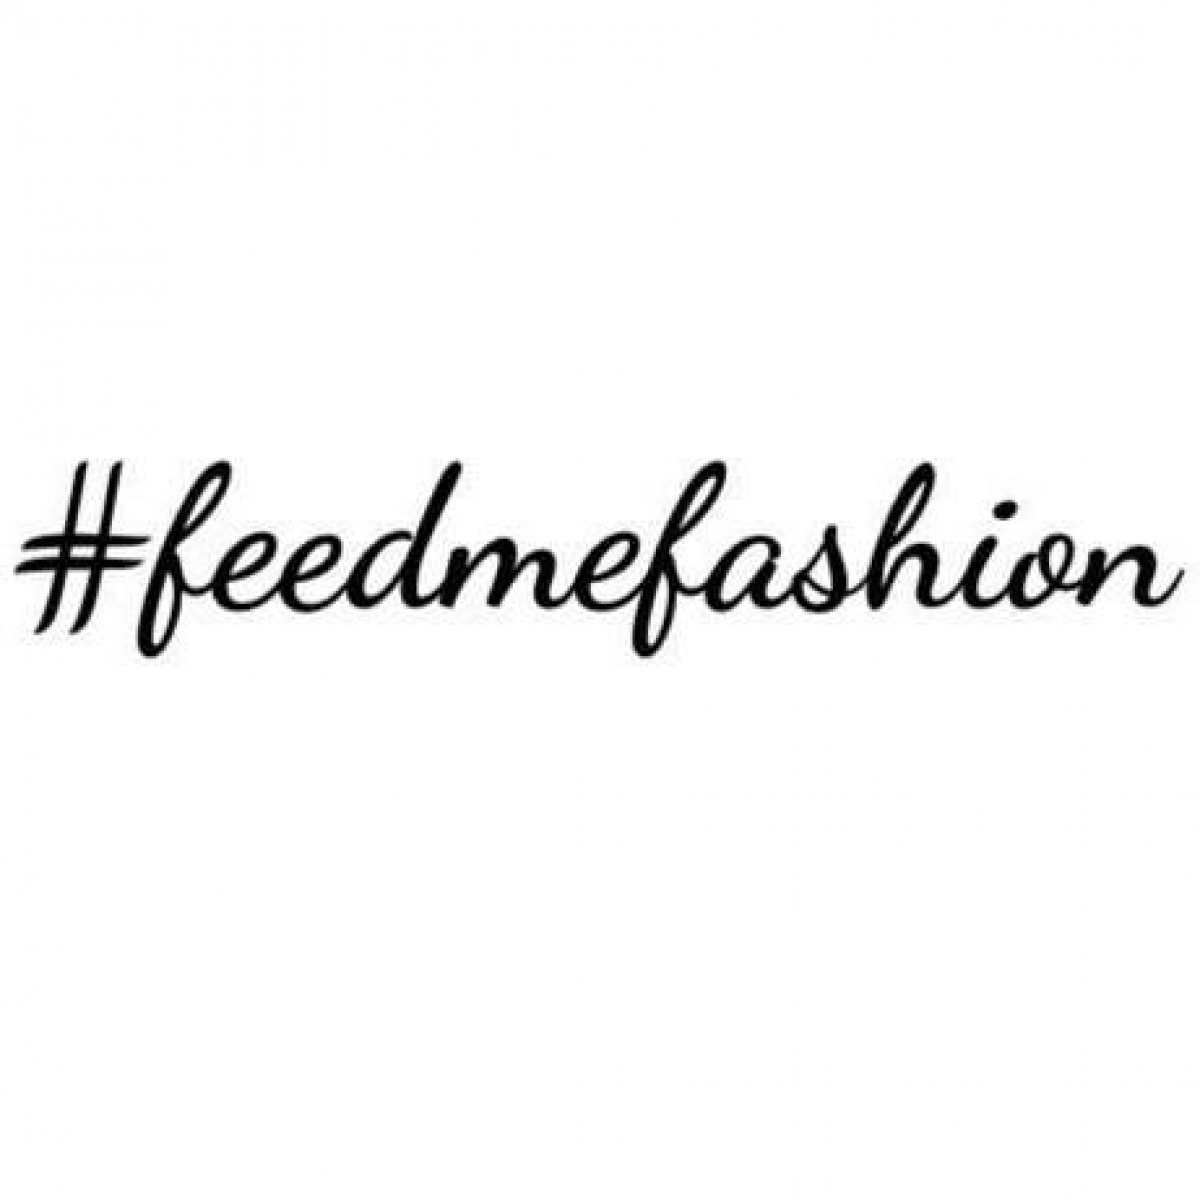 Feedme.fashion is almost back!